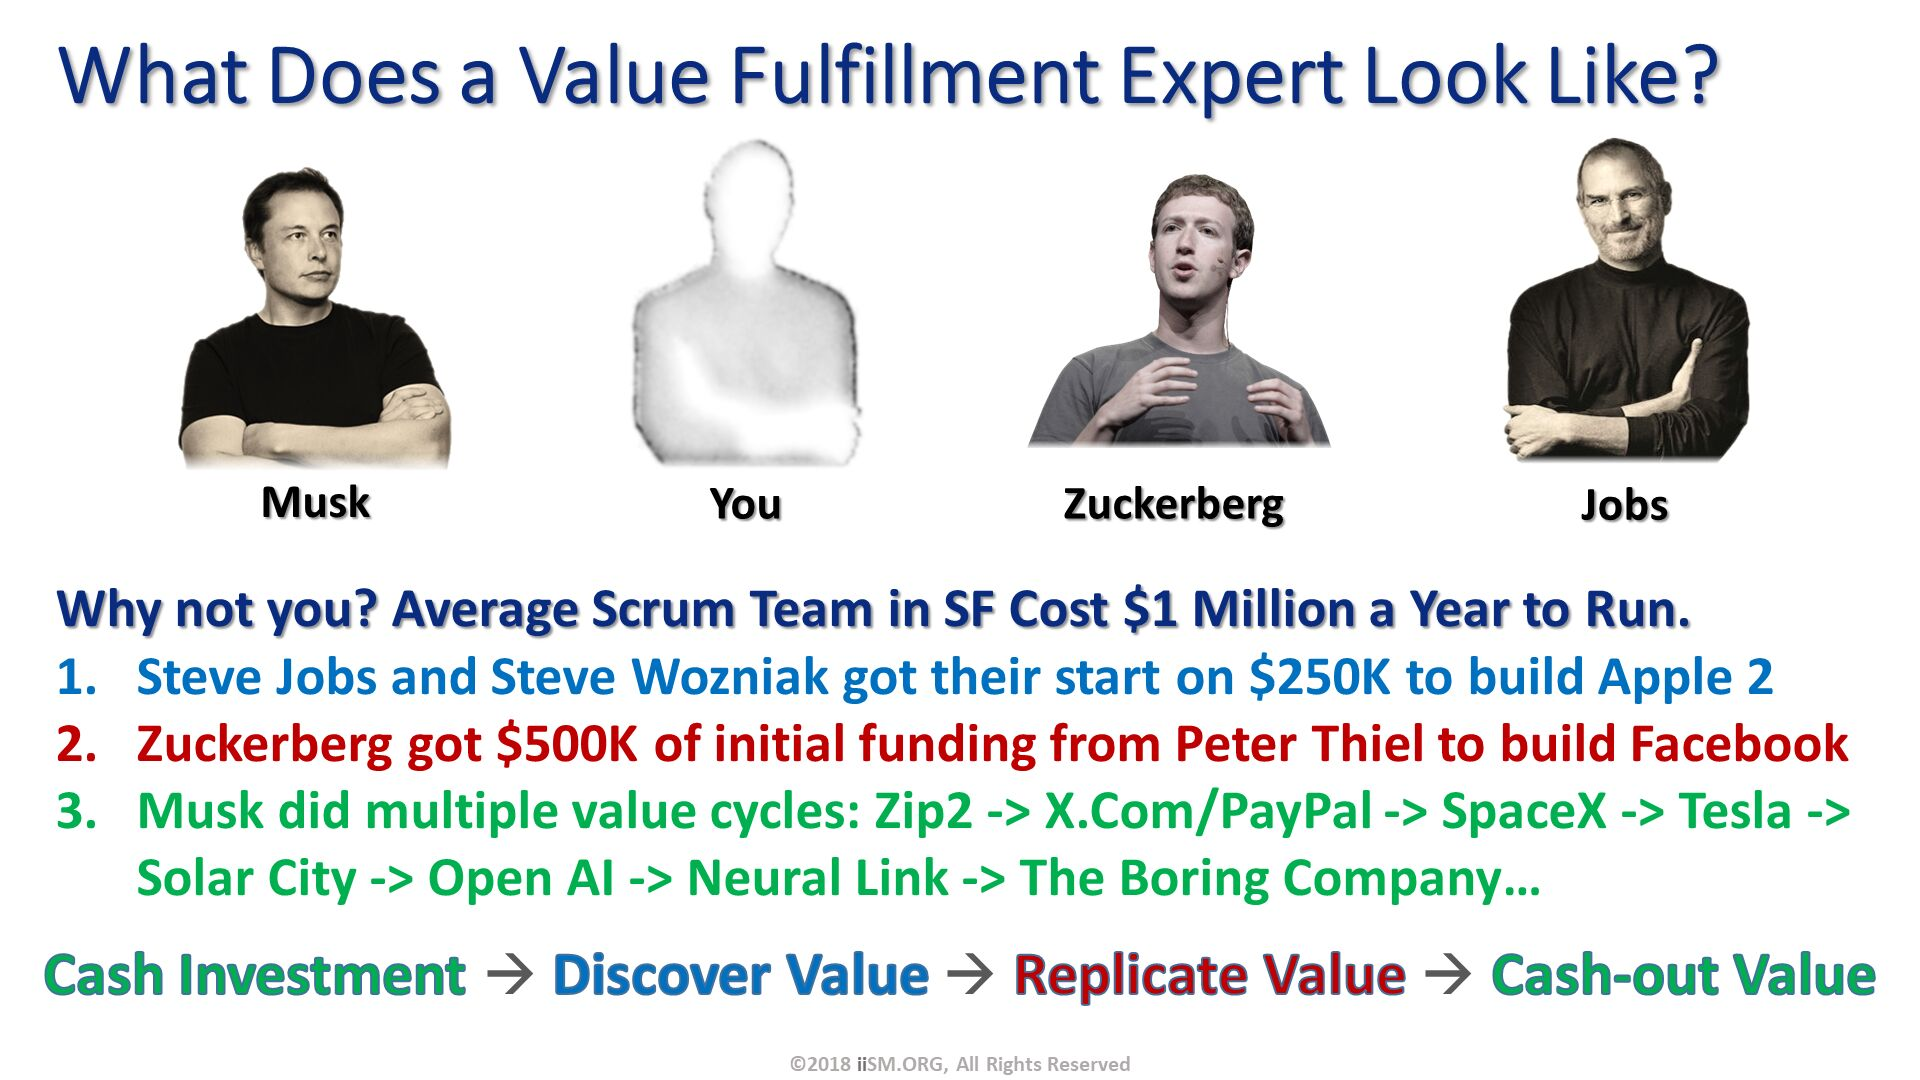 What Does a Value Fulfillment Expert Look Like?. ©2018 iiSM.ORG, All Rights Reserved. Cash Investment  Discover Value  Replicate Value  Cash-out Value. Musk. You. Zuckerberg. Jobs. Why not you? Average Scrum Team in SF Cost $1 Million a Year to Run. Steve Jobs and Steve Wozniak got their start on $250K to build Apple 2 Zuckerberg got $500K of initial funding from Peter Thiel to build Facebook Musk did multiple value cycles: Zip2 -> X.Com/PayPal -> SpaceX -> Tesla -> Solar City -> Open AI -> Neural Link -> The Boring Company….